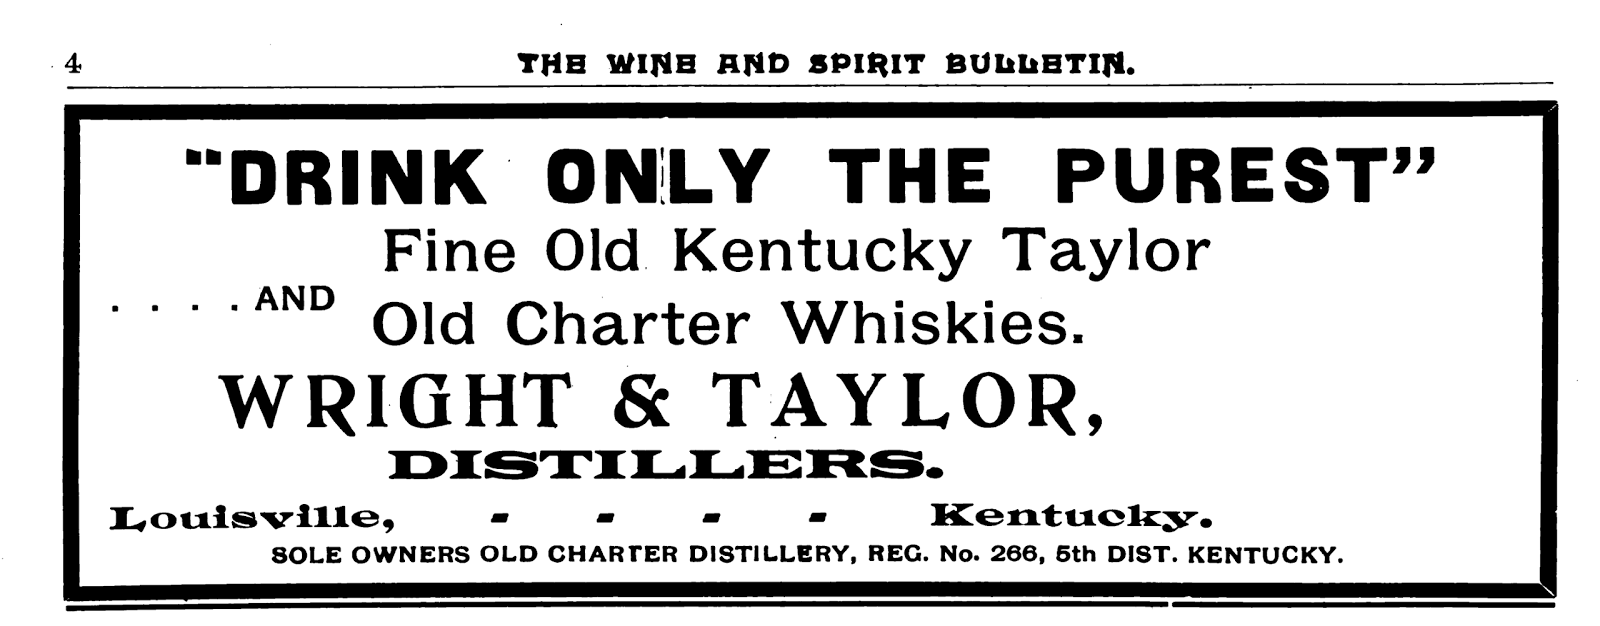 Kentucky Wasn't Big Enough for Two Colonel Taylors